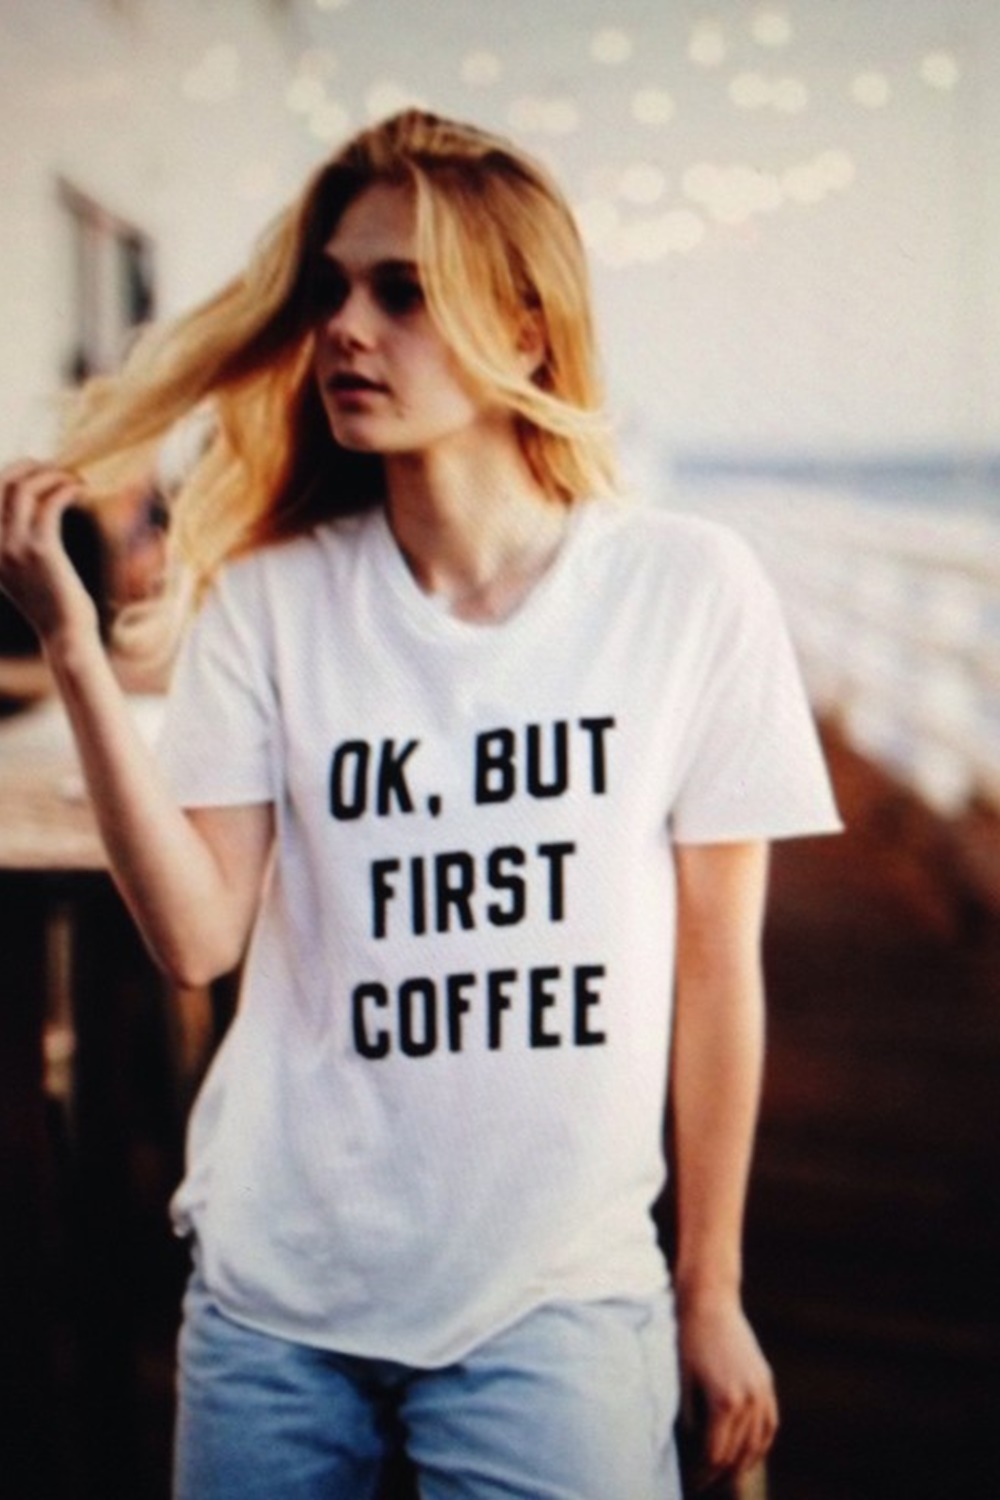 2019 new fashion Korean hot sale women's T-shirt pure cotton OK BUT FIRST COFFEE printed funny hip hop street clothes